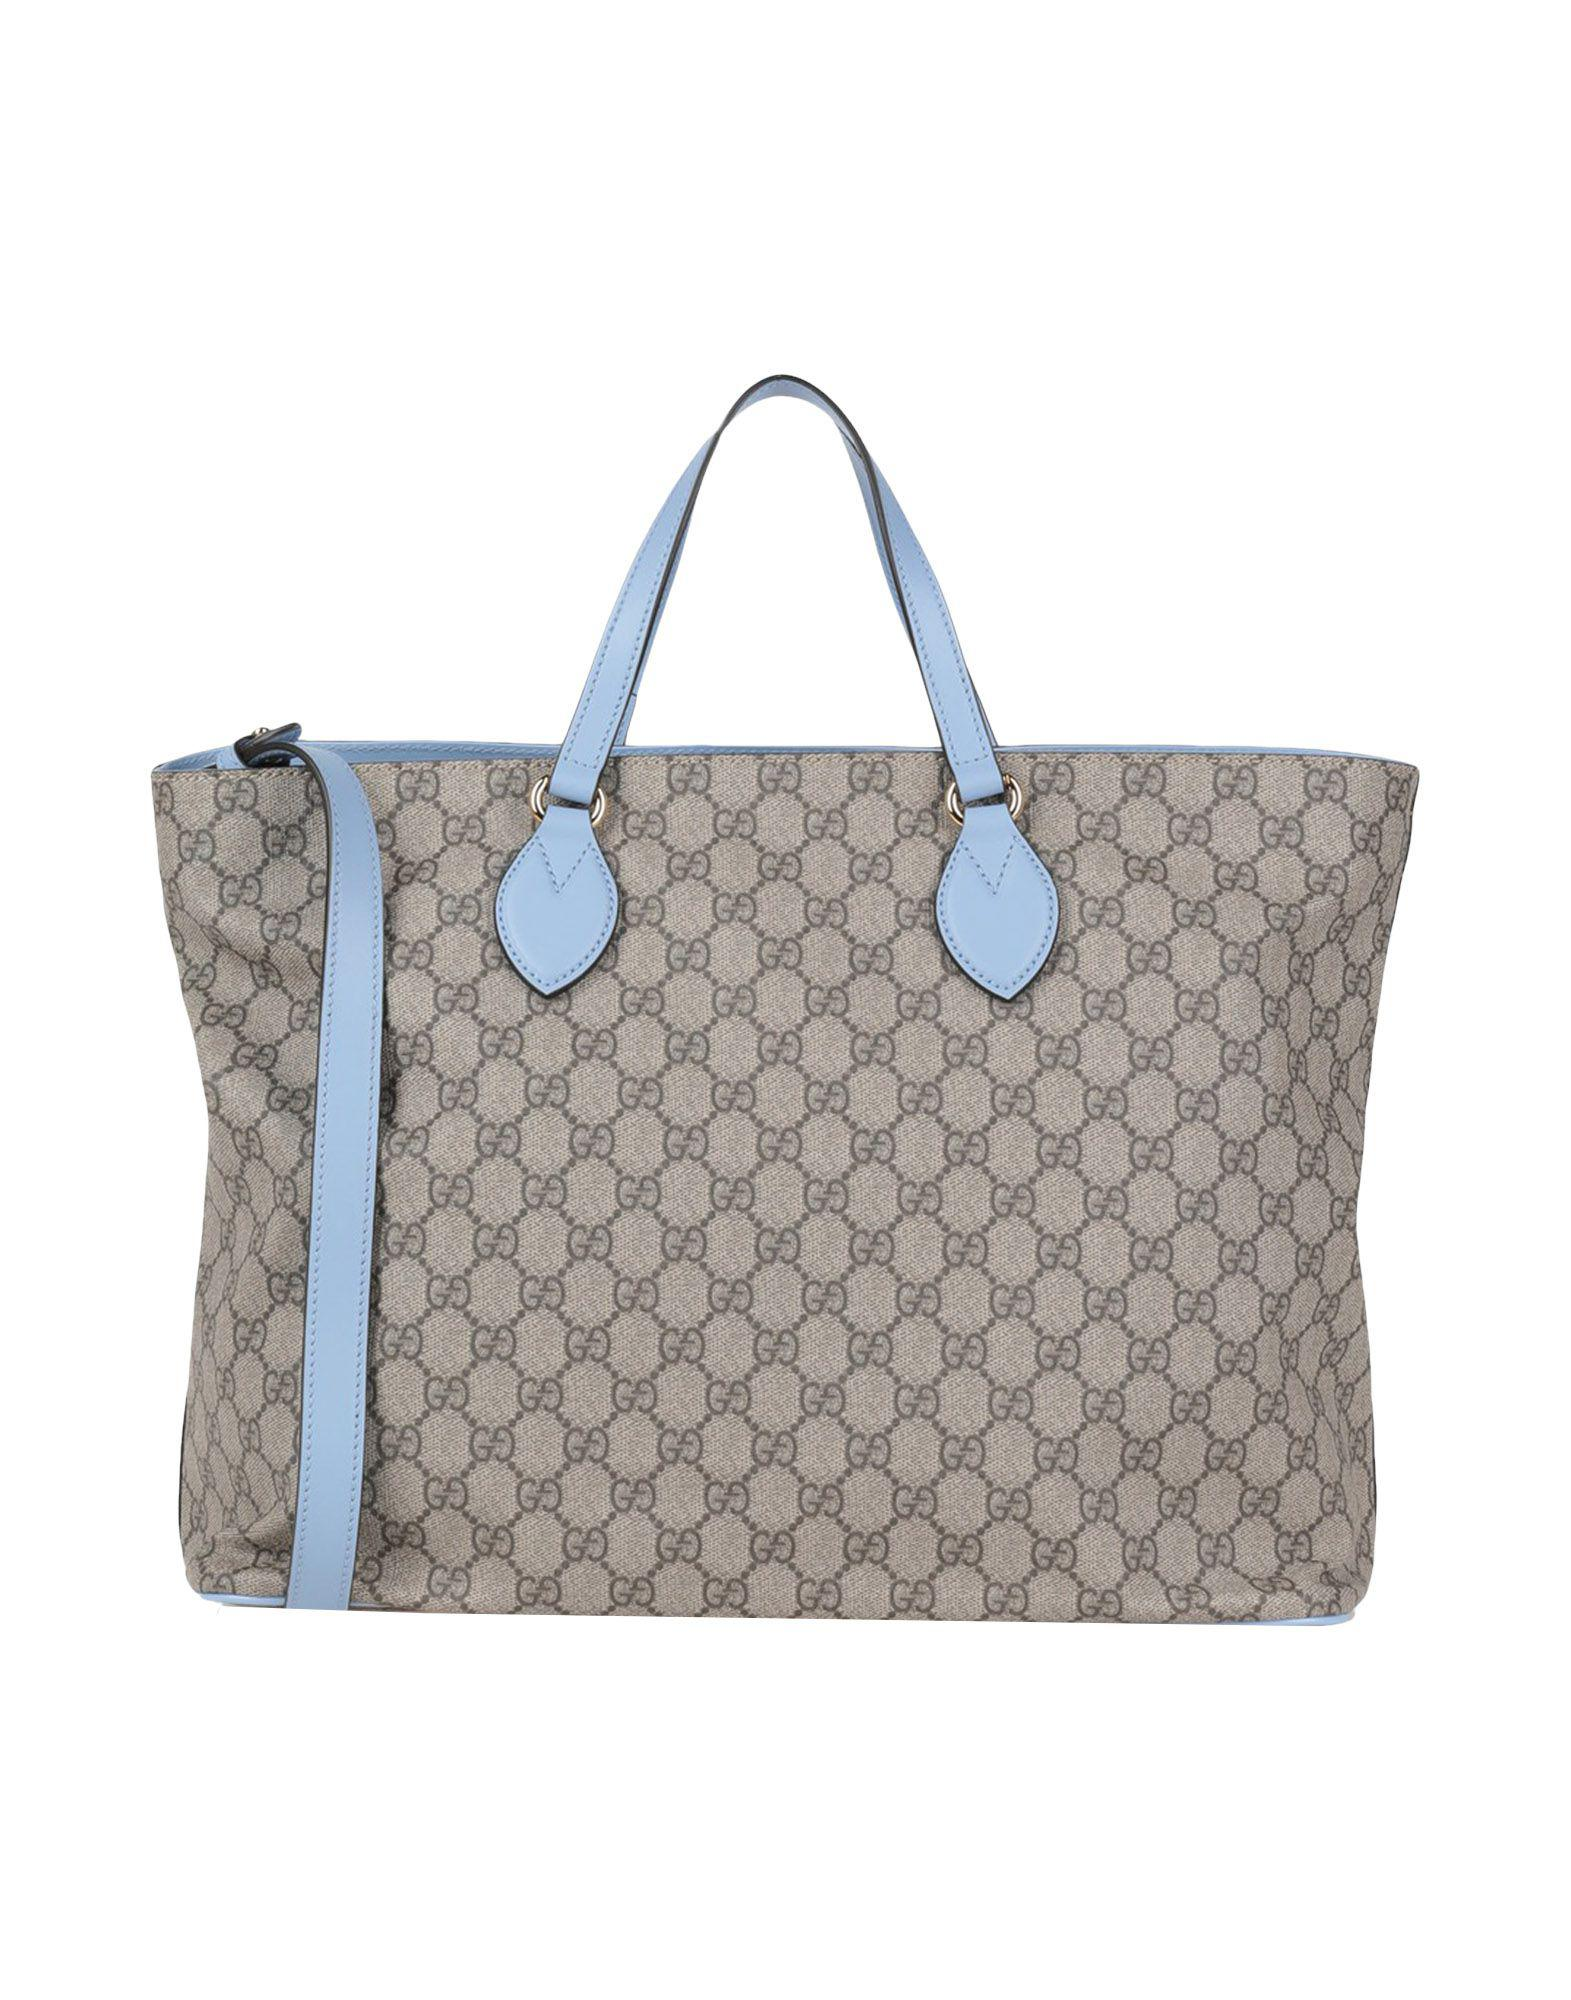 54b088462 Gucci Baby Tote Bags in Natural - Lyst